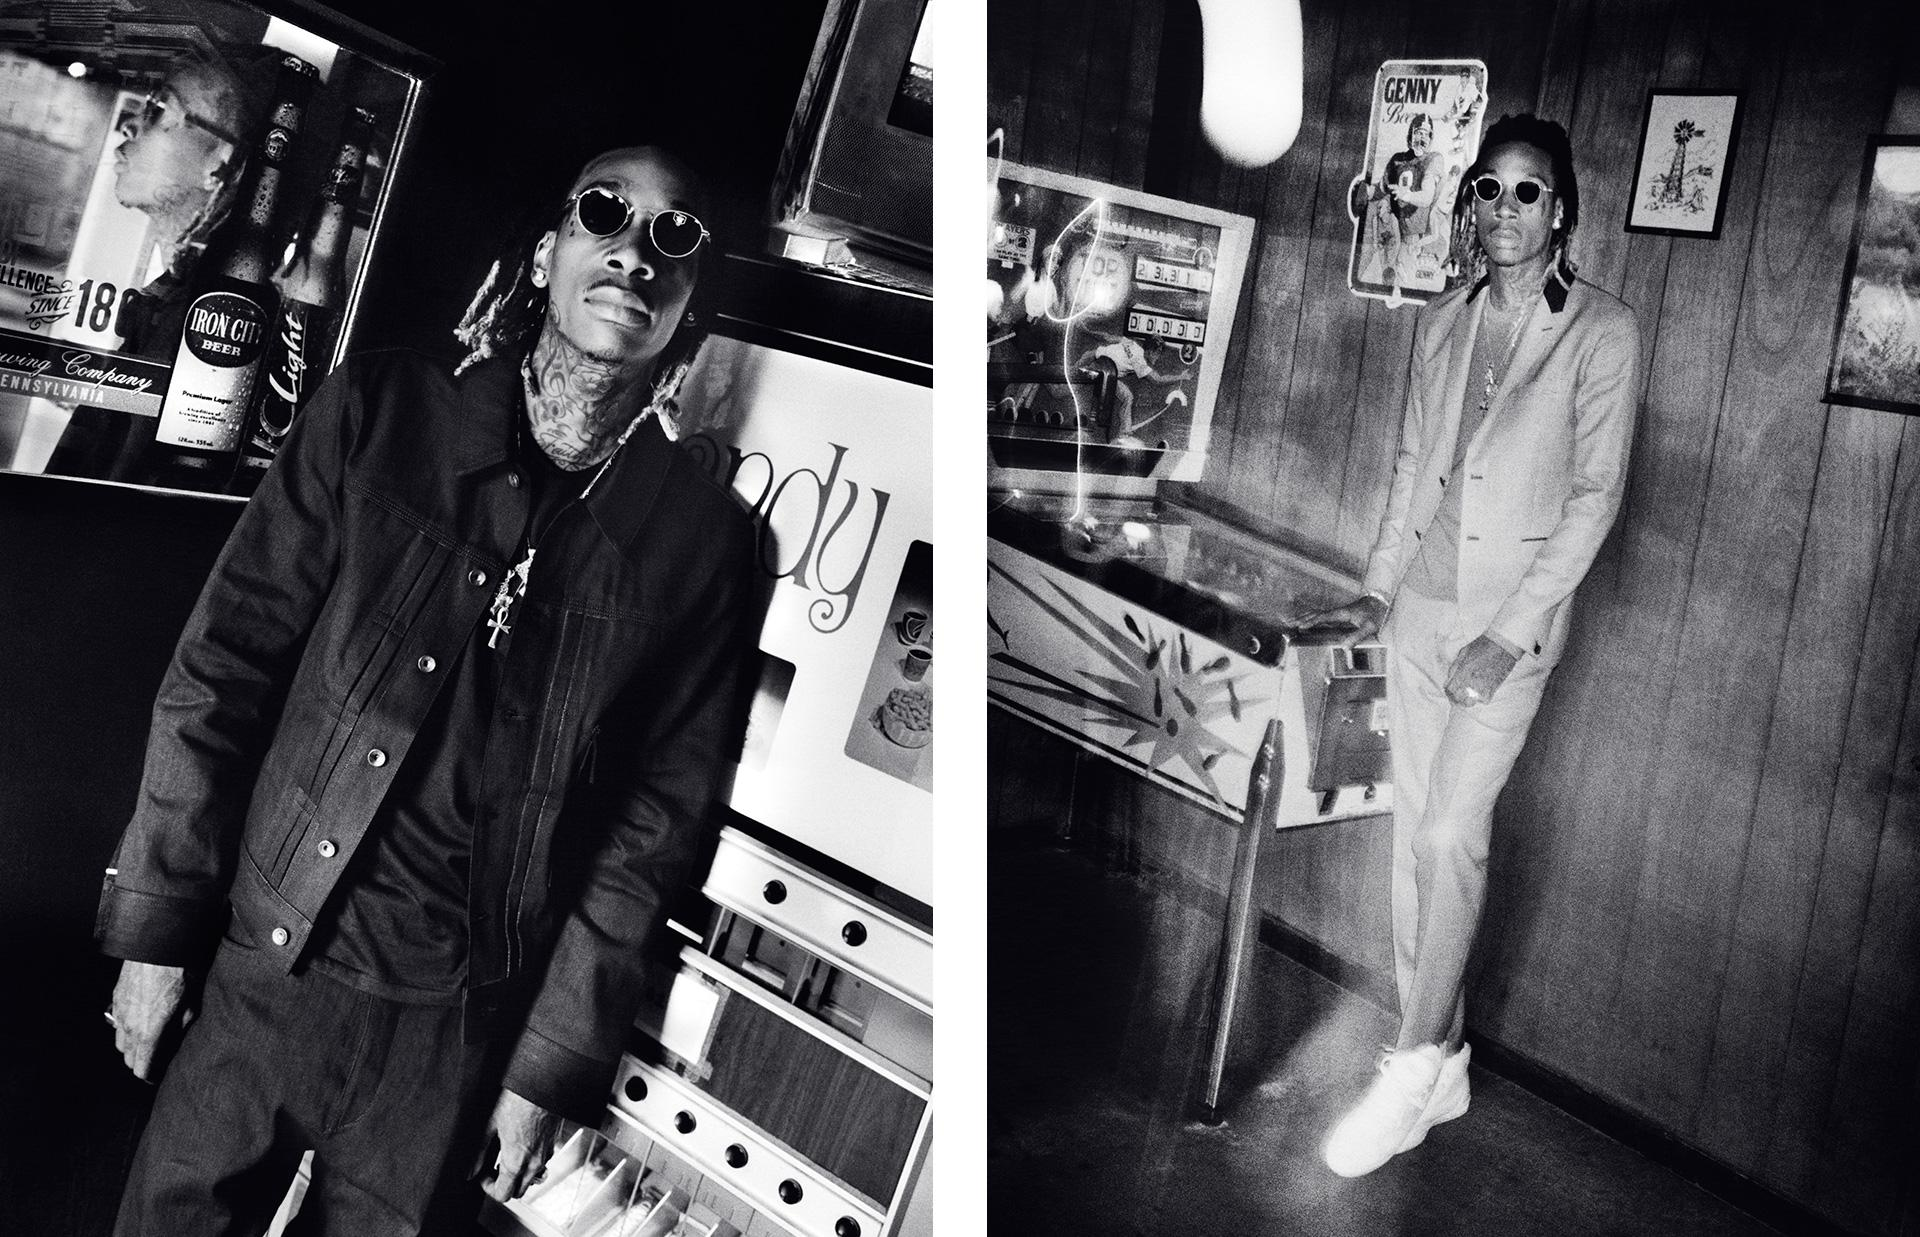 The Men's Project featuring Wiz Khalifa